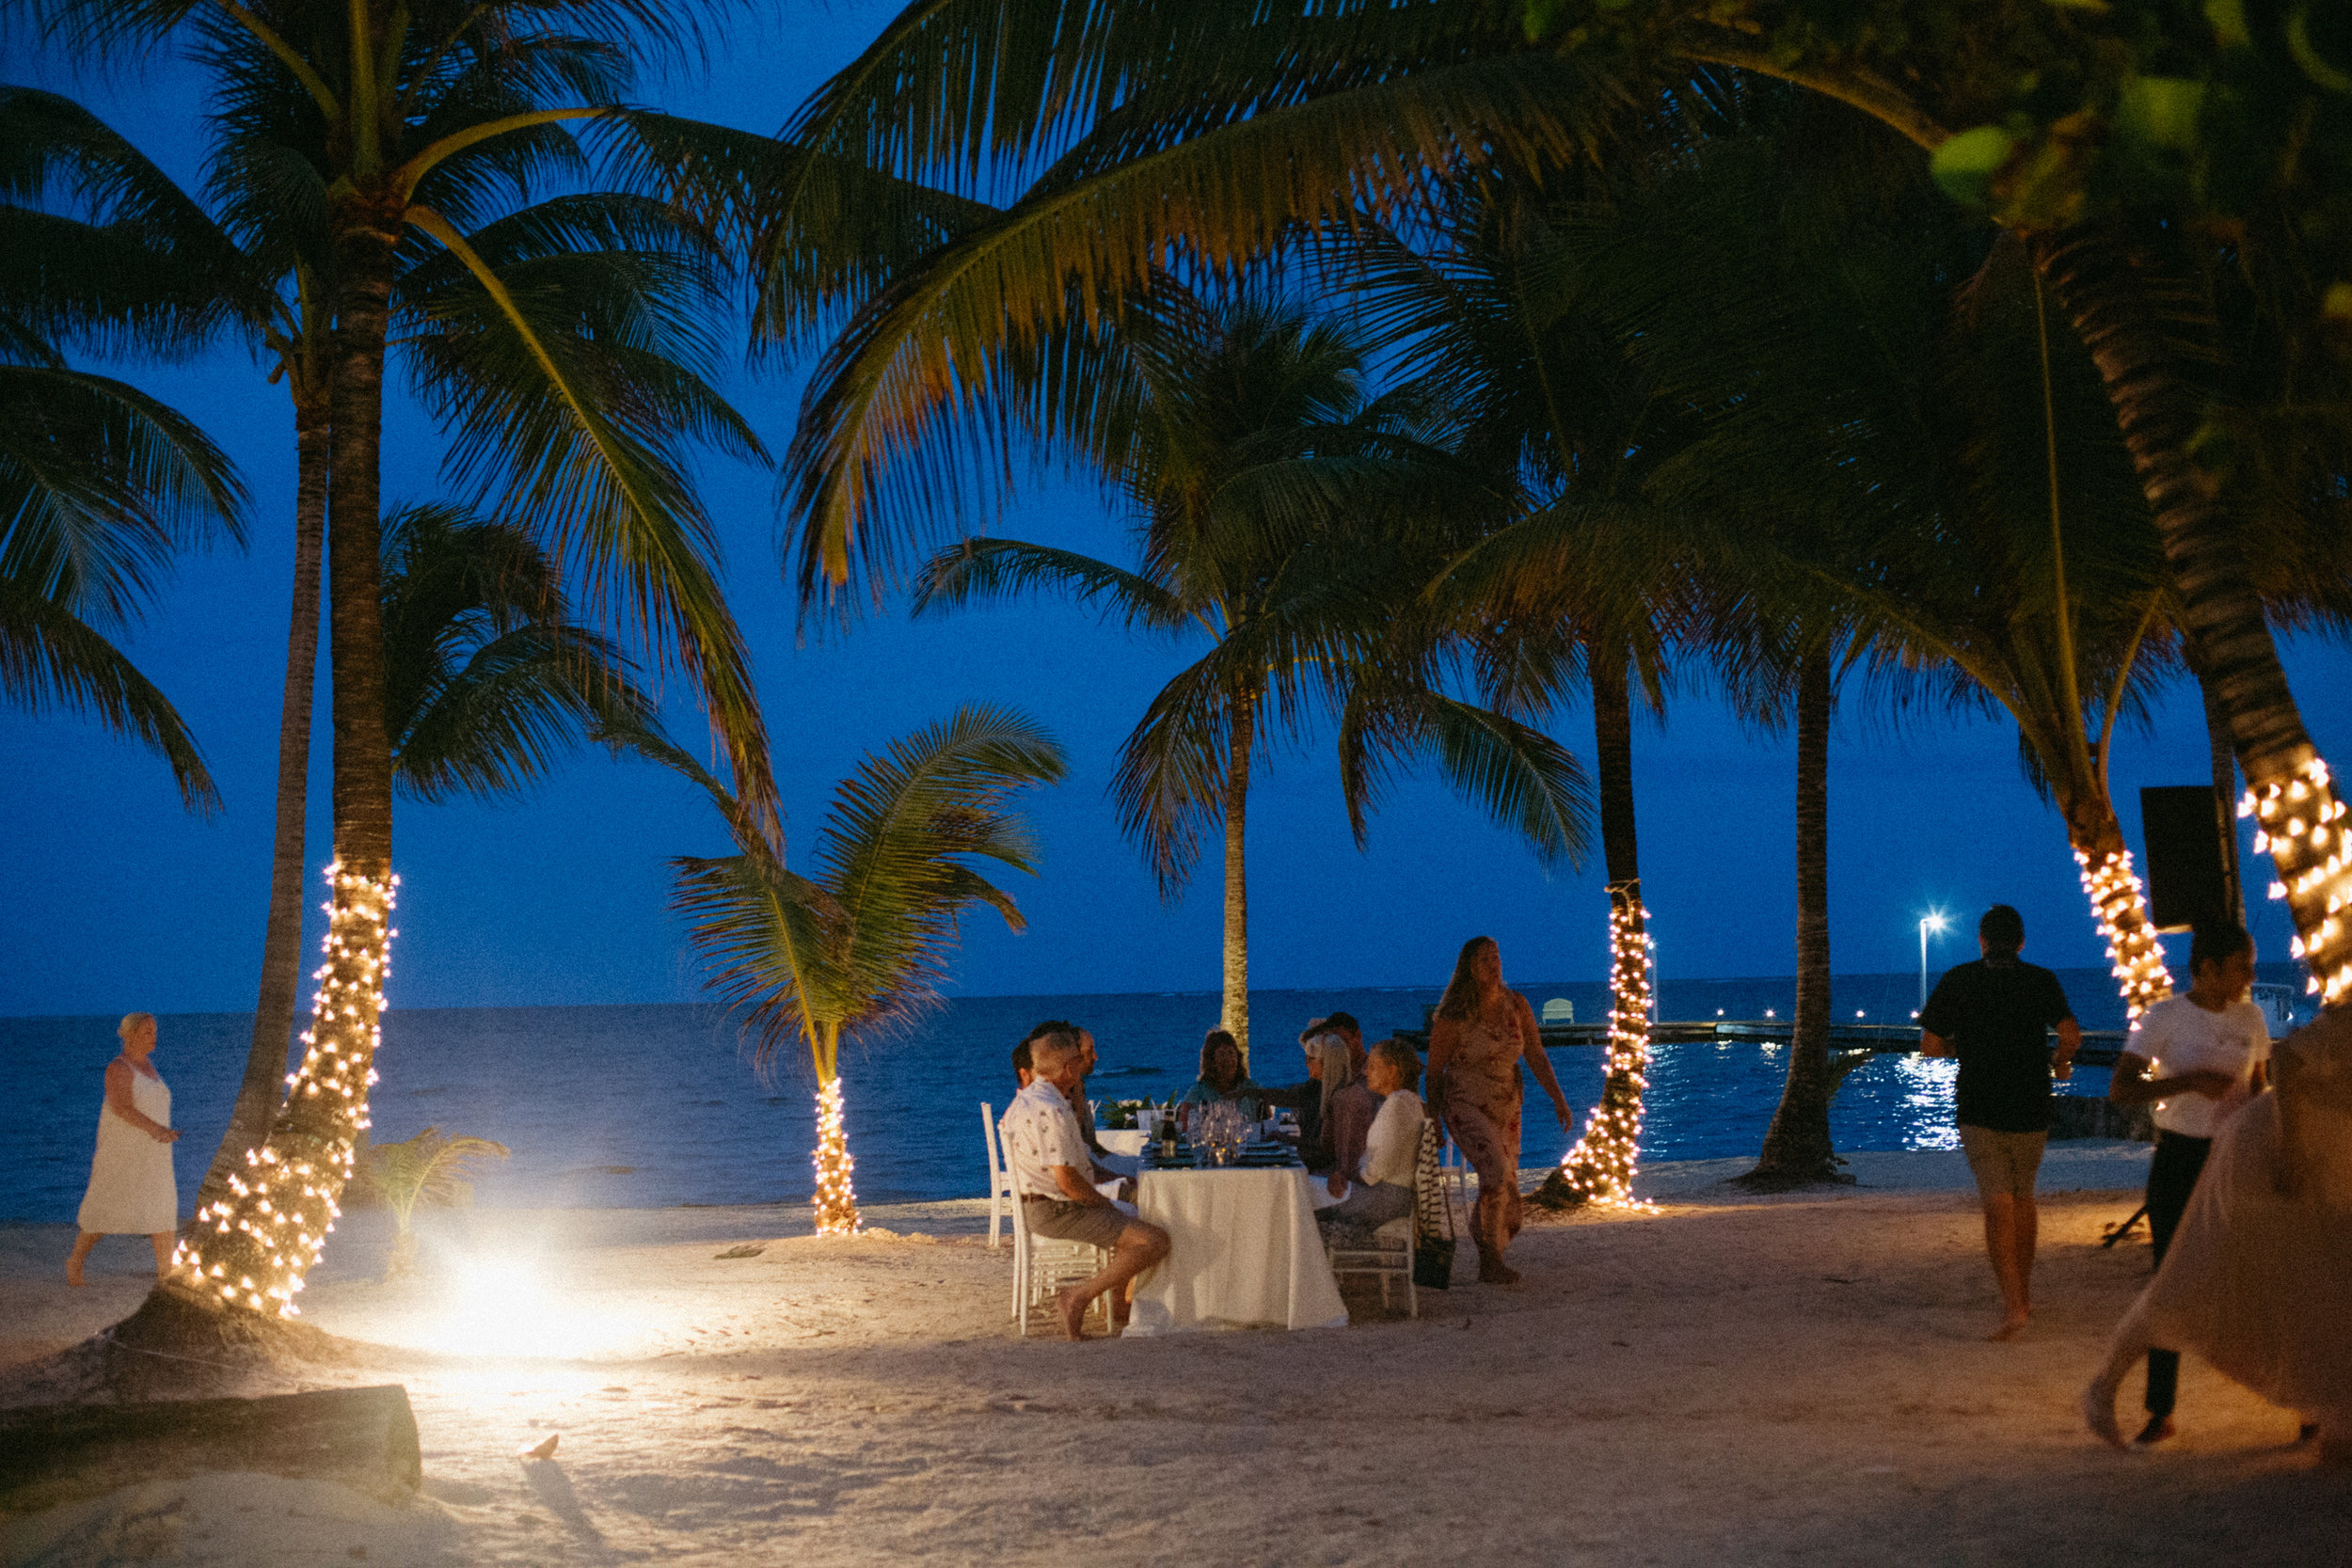 san-pescador-belize-wedding-christinemariephoto-j-k-156.jpg